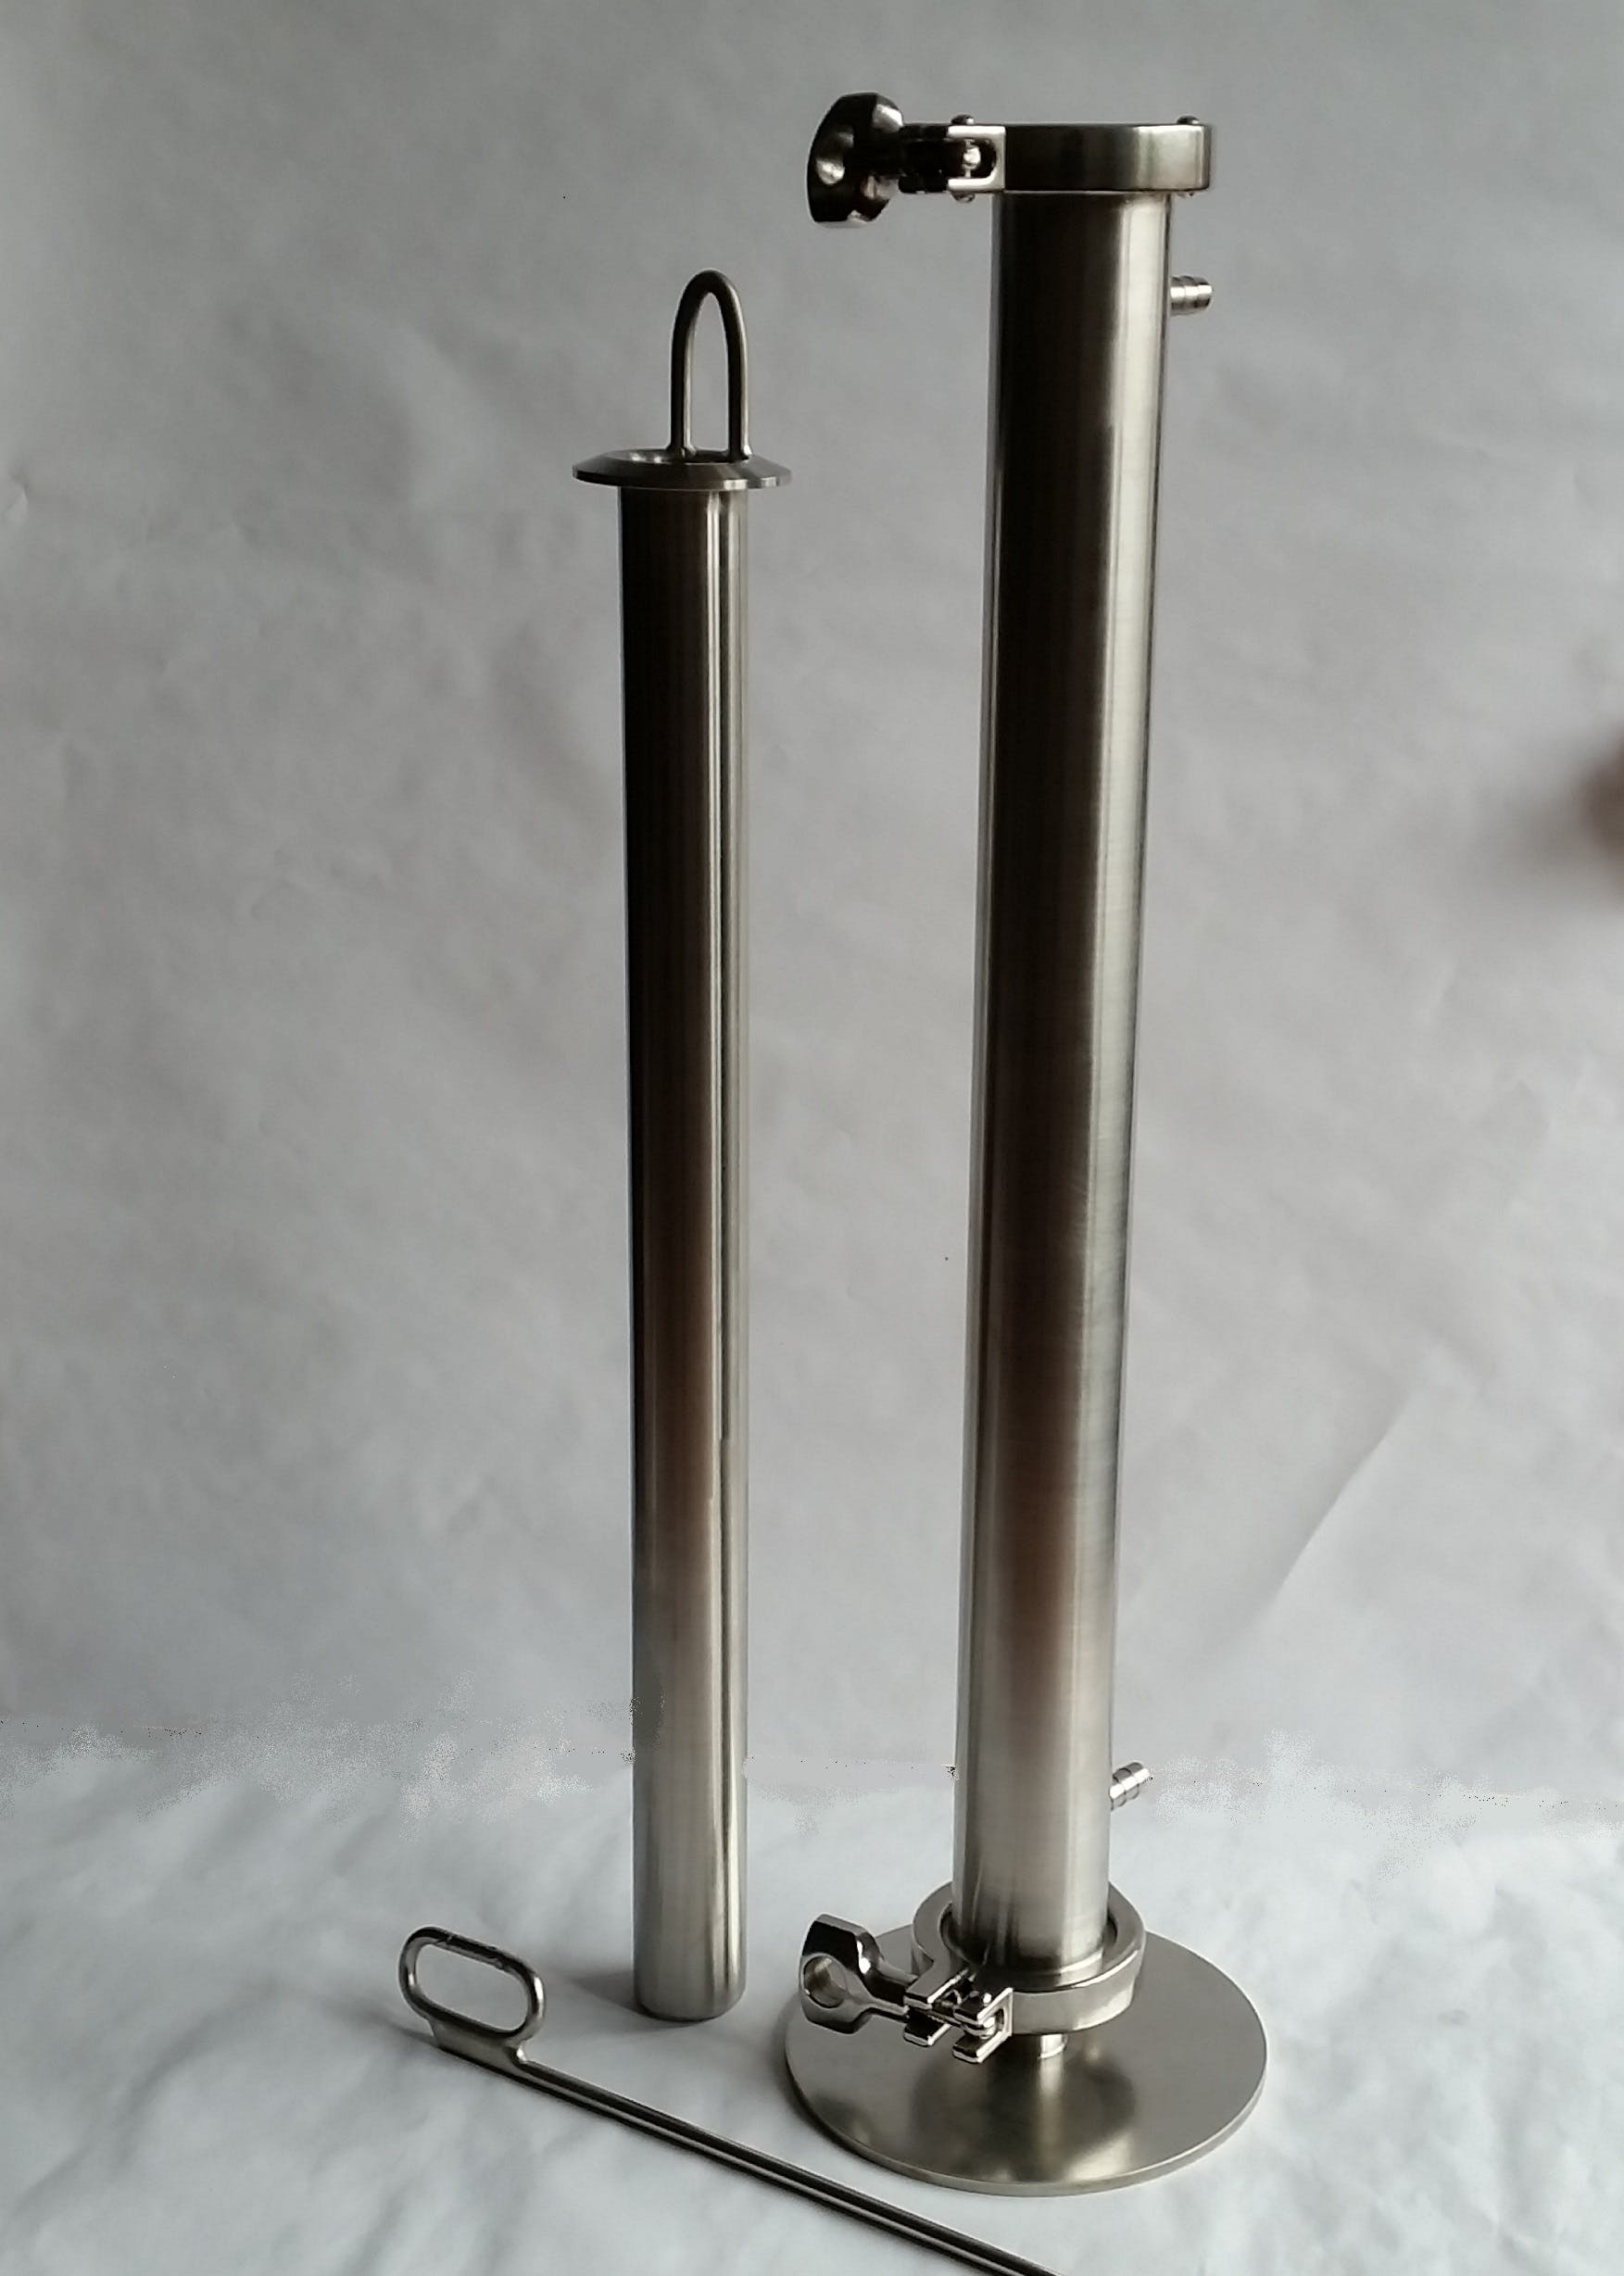 Wort sample chiller Brewhouse sold by Agile Stainless LLC